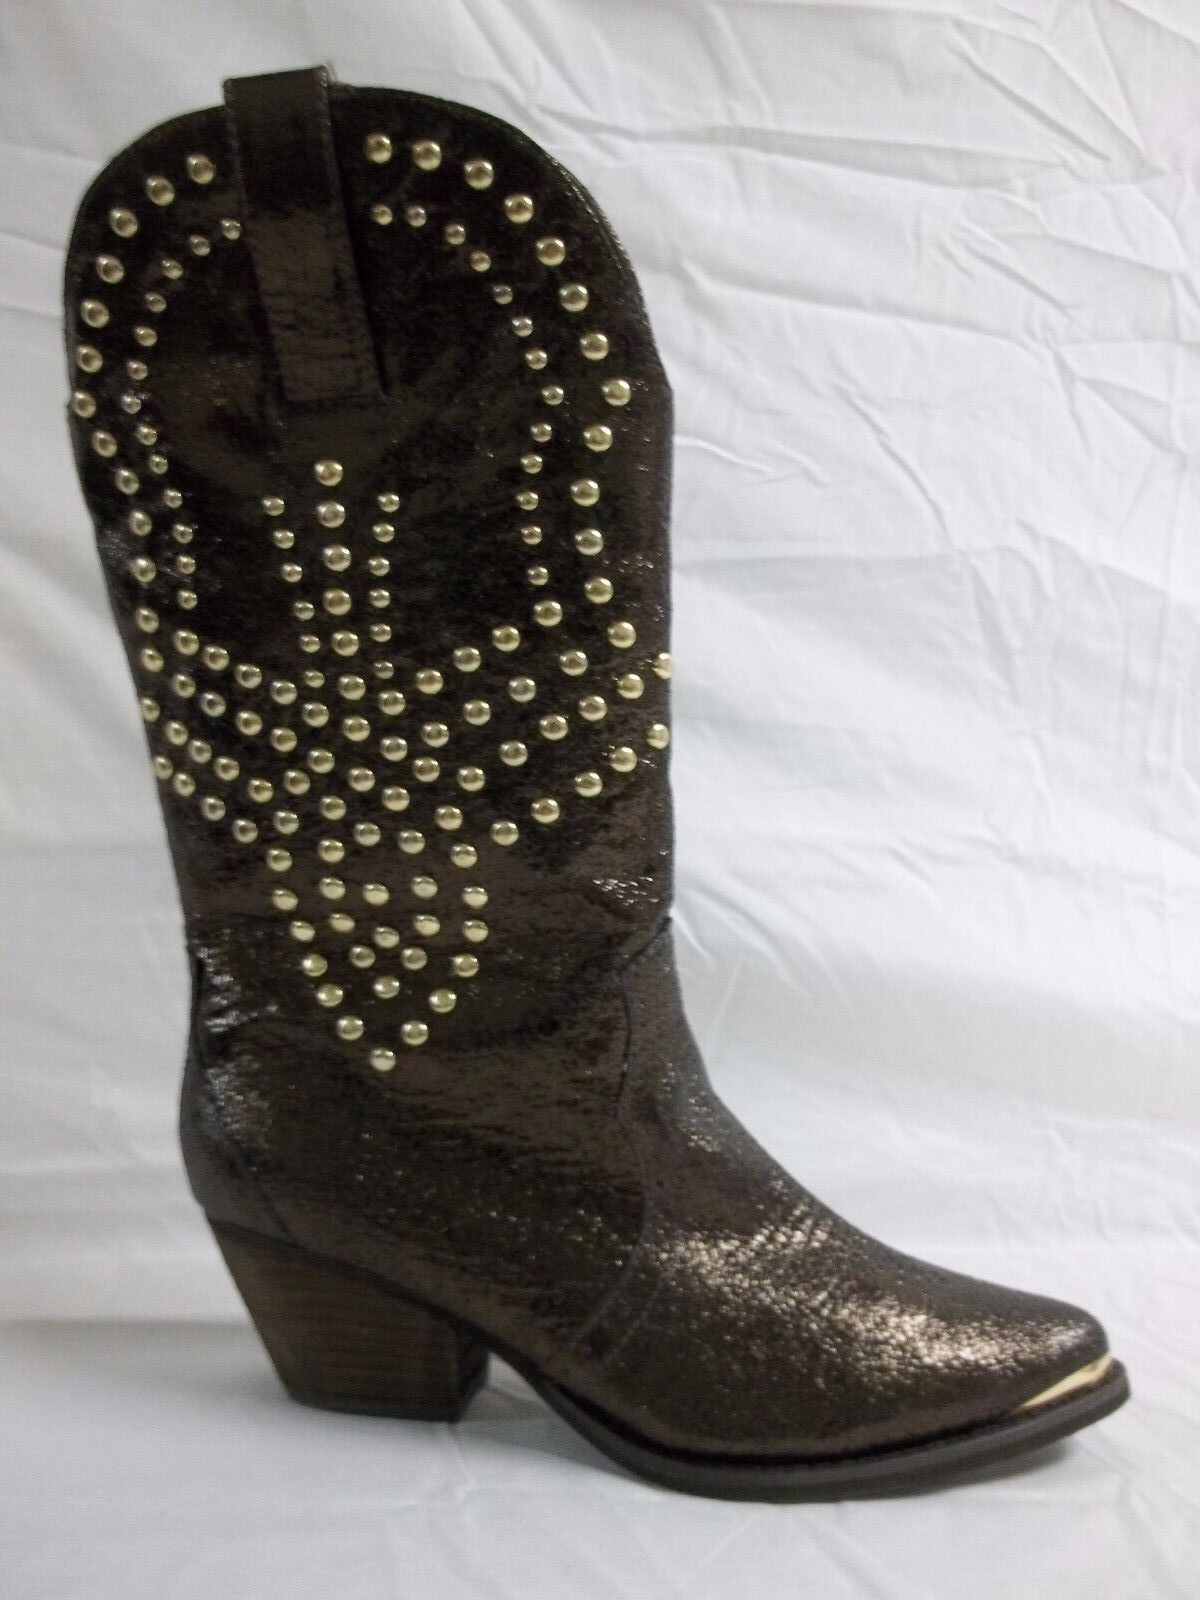 Reba Size 7.5 M Biker Brown Leather Mid Calf Cowboy Boots New Womens Shoes NWB